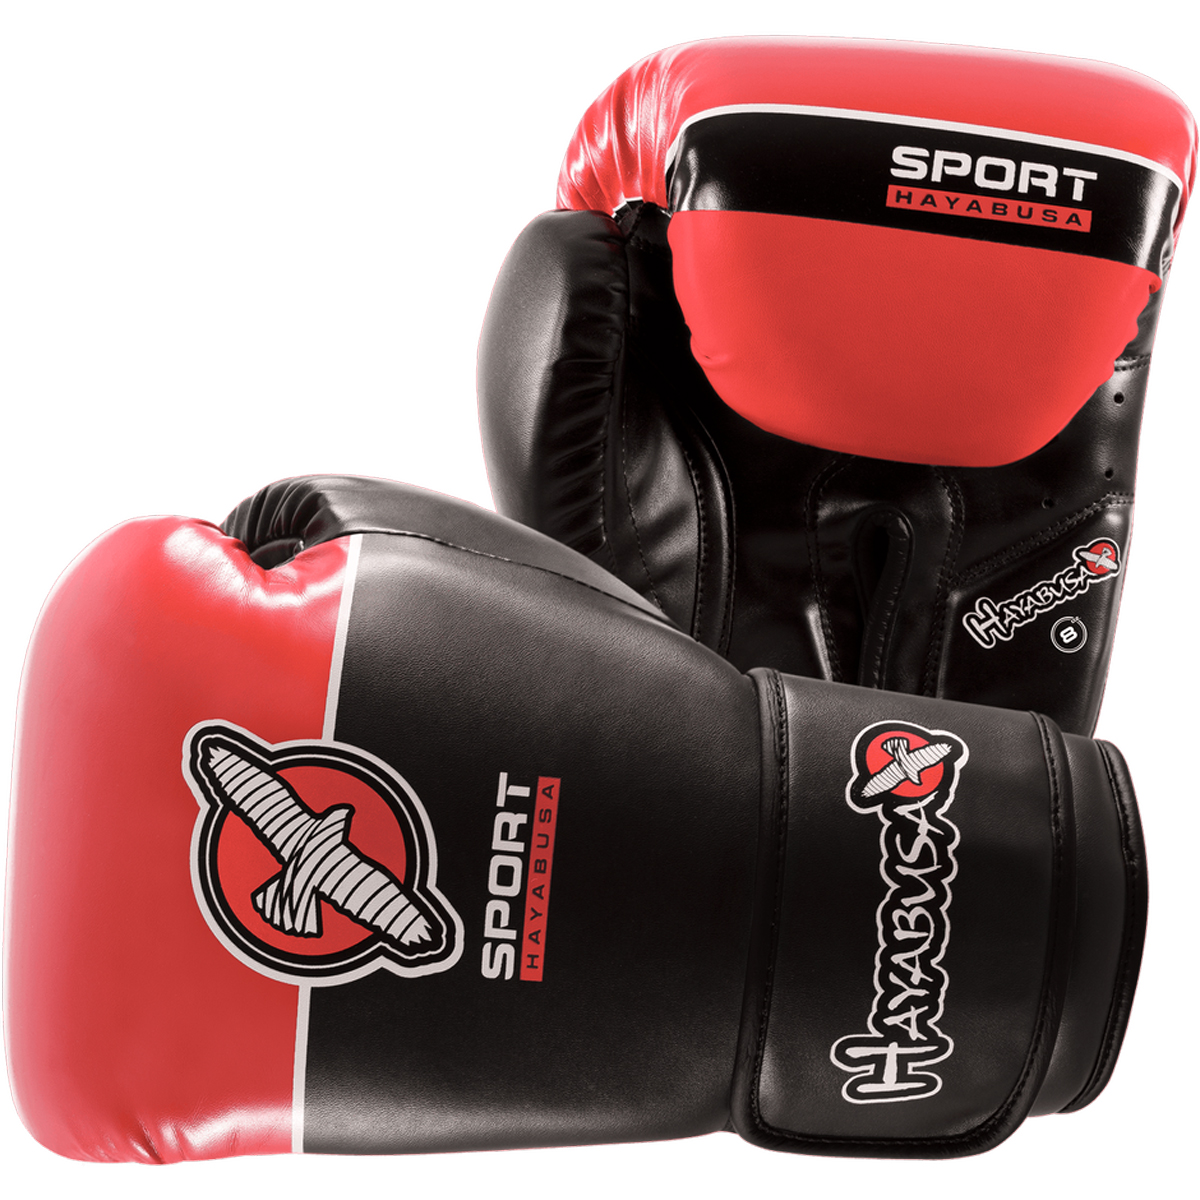 Hayabusa Sport Hook and Loop Training Glove - 8 oz. - Black/Coral